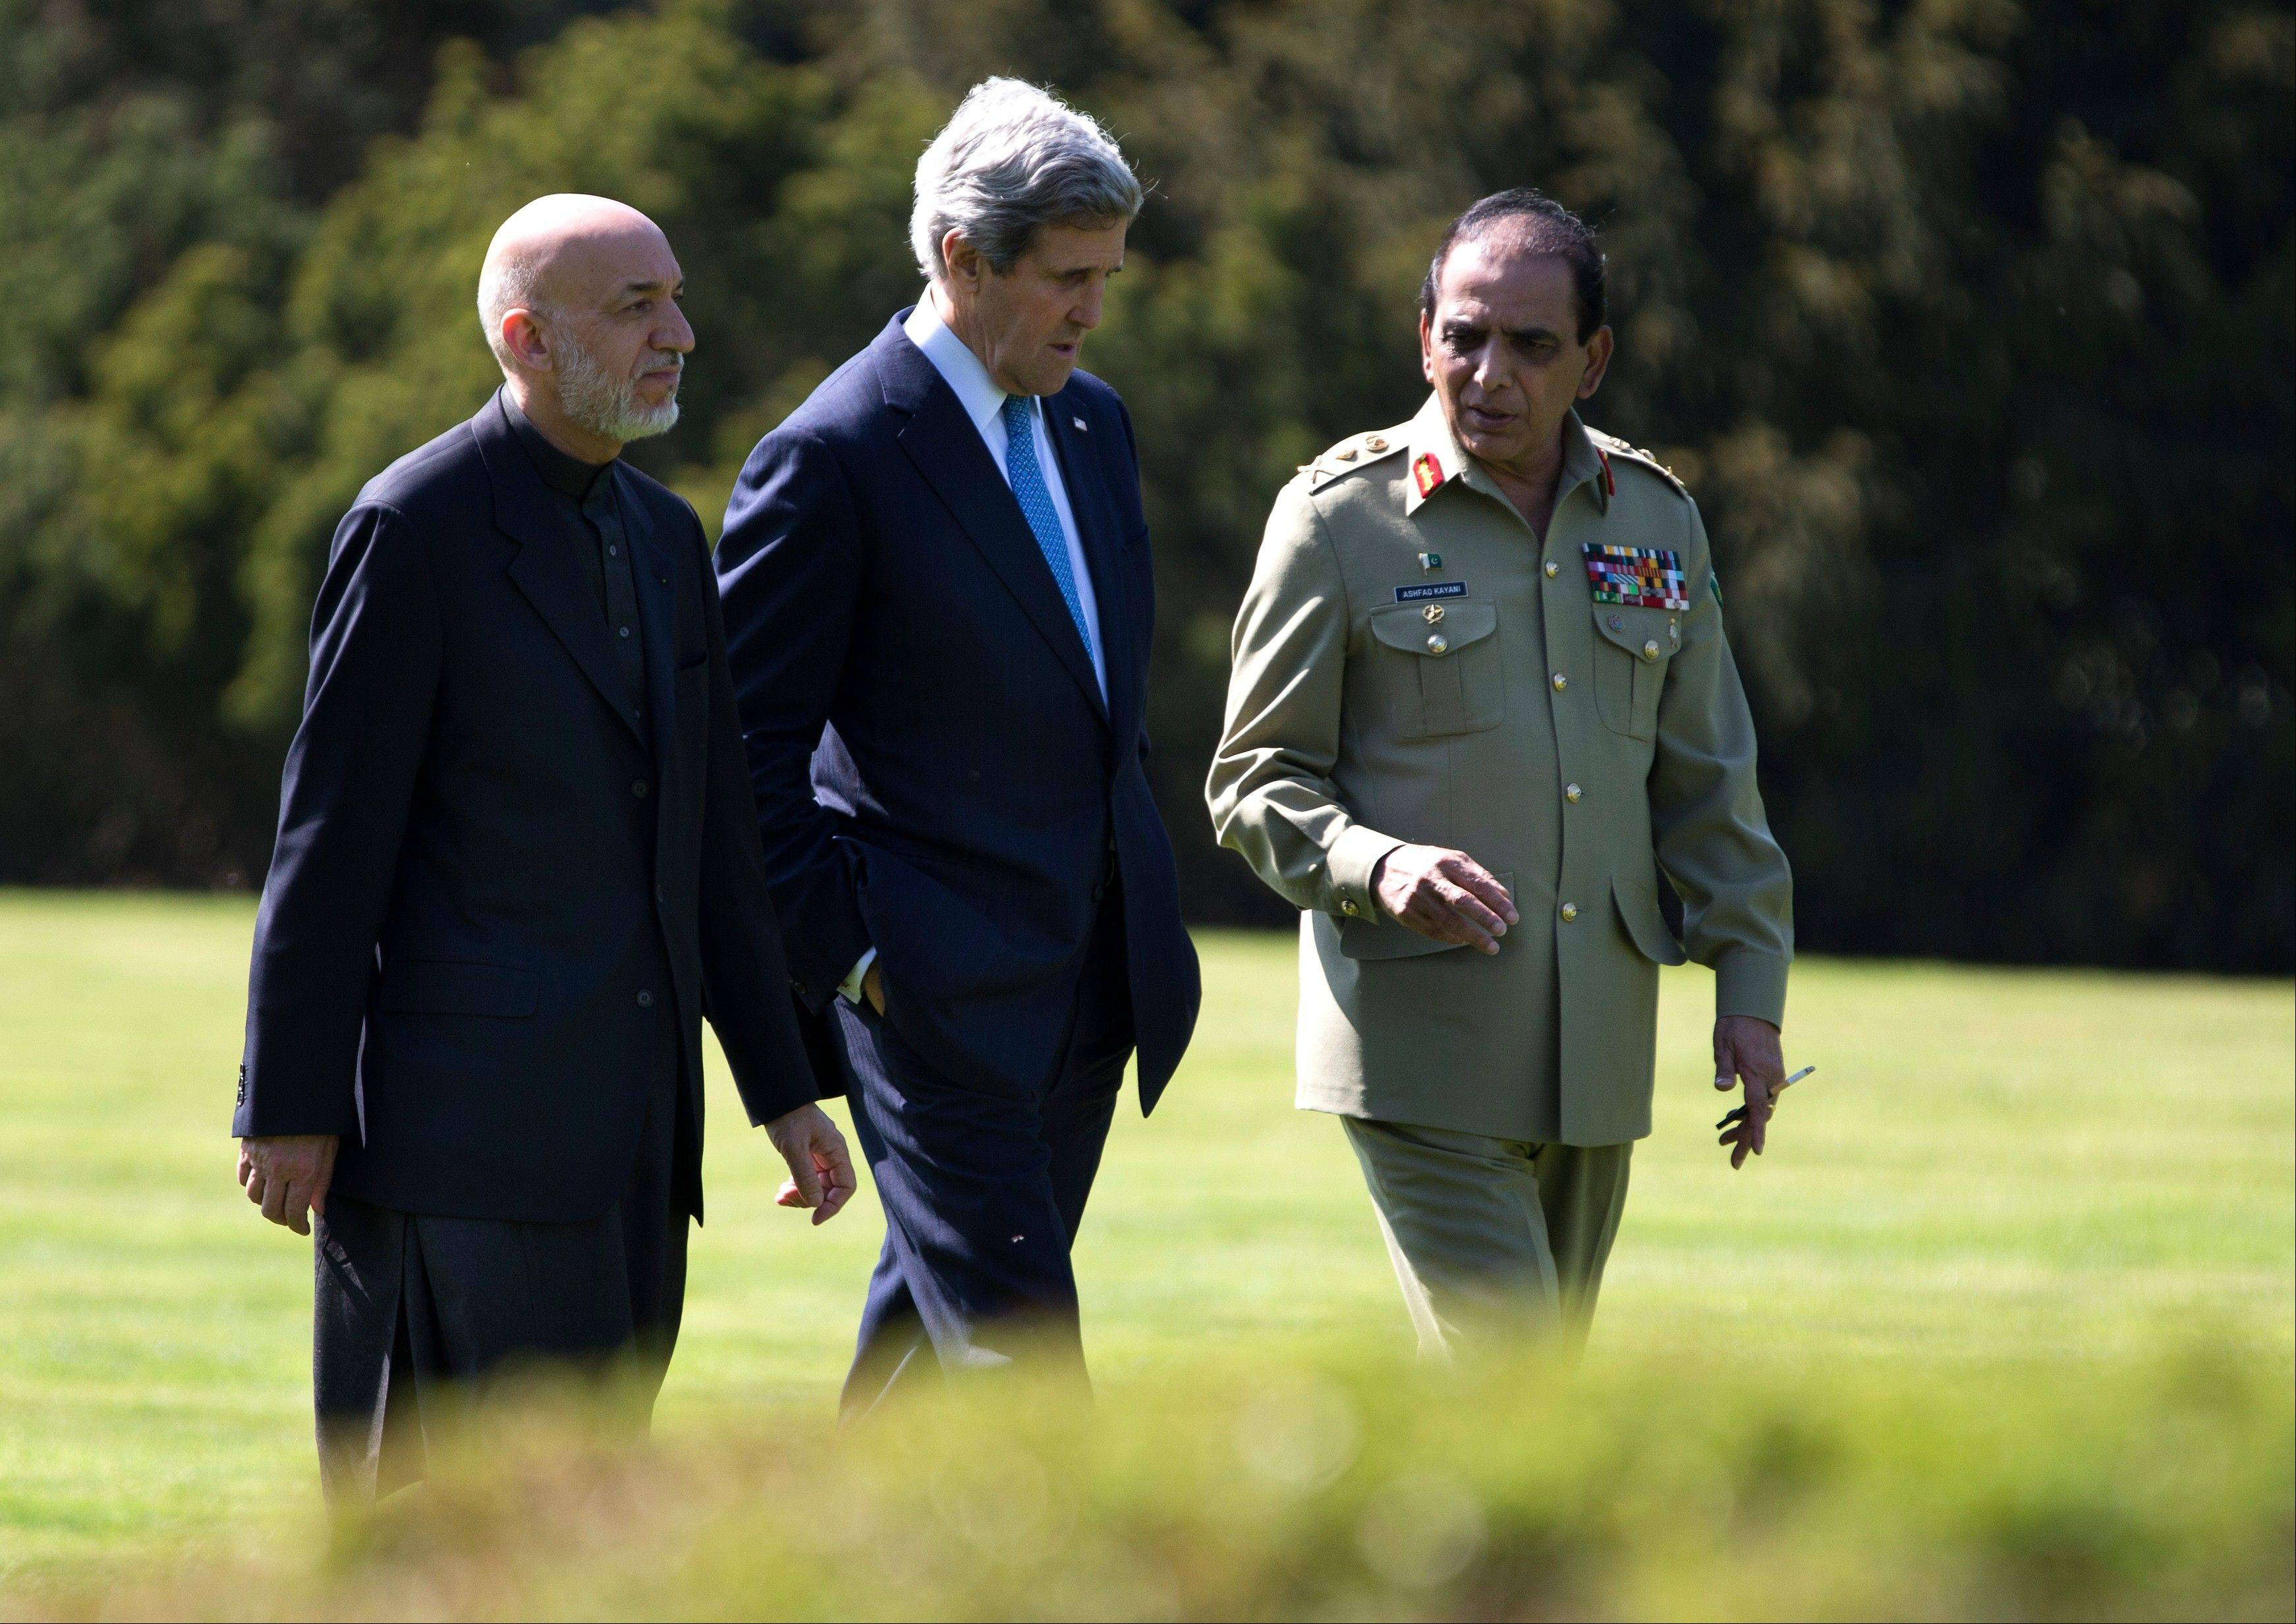 U.S. Secretary of State John Kerry, center, talks with Afghan President Hamid Karzai, left, and Pakistani Army Chief Gen. Ashfaq Parvez Kayani as they take a walk during a break in a meeting on Wednesday, April 24, 2013, in Brussels, Belgium. The trilateral meeting is to discuss regional security issues, and the 2014 withdrawal of NATO combat forces from Afghanistan.